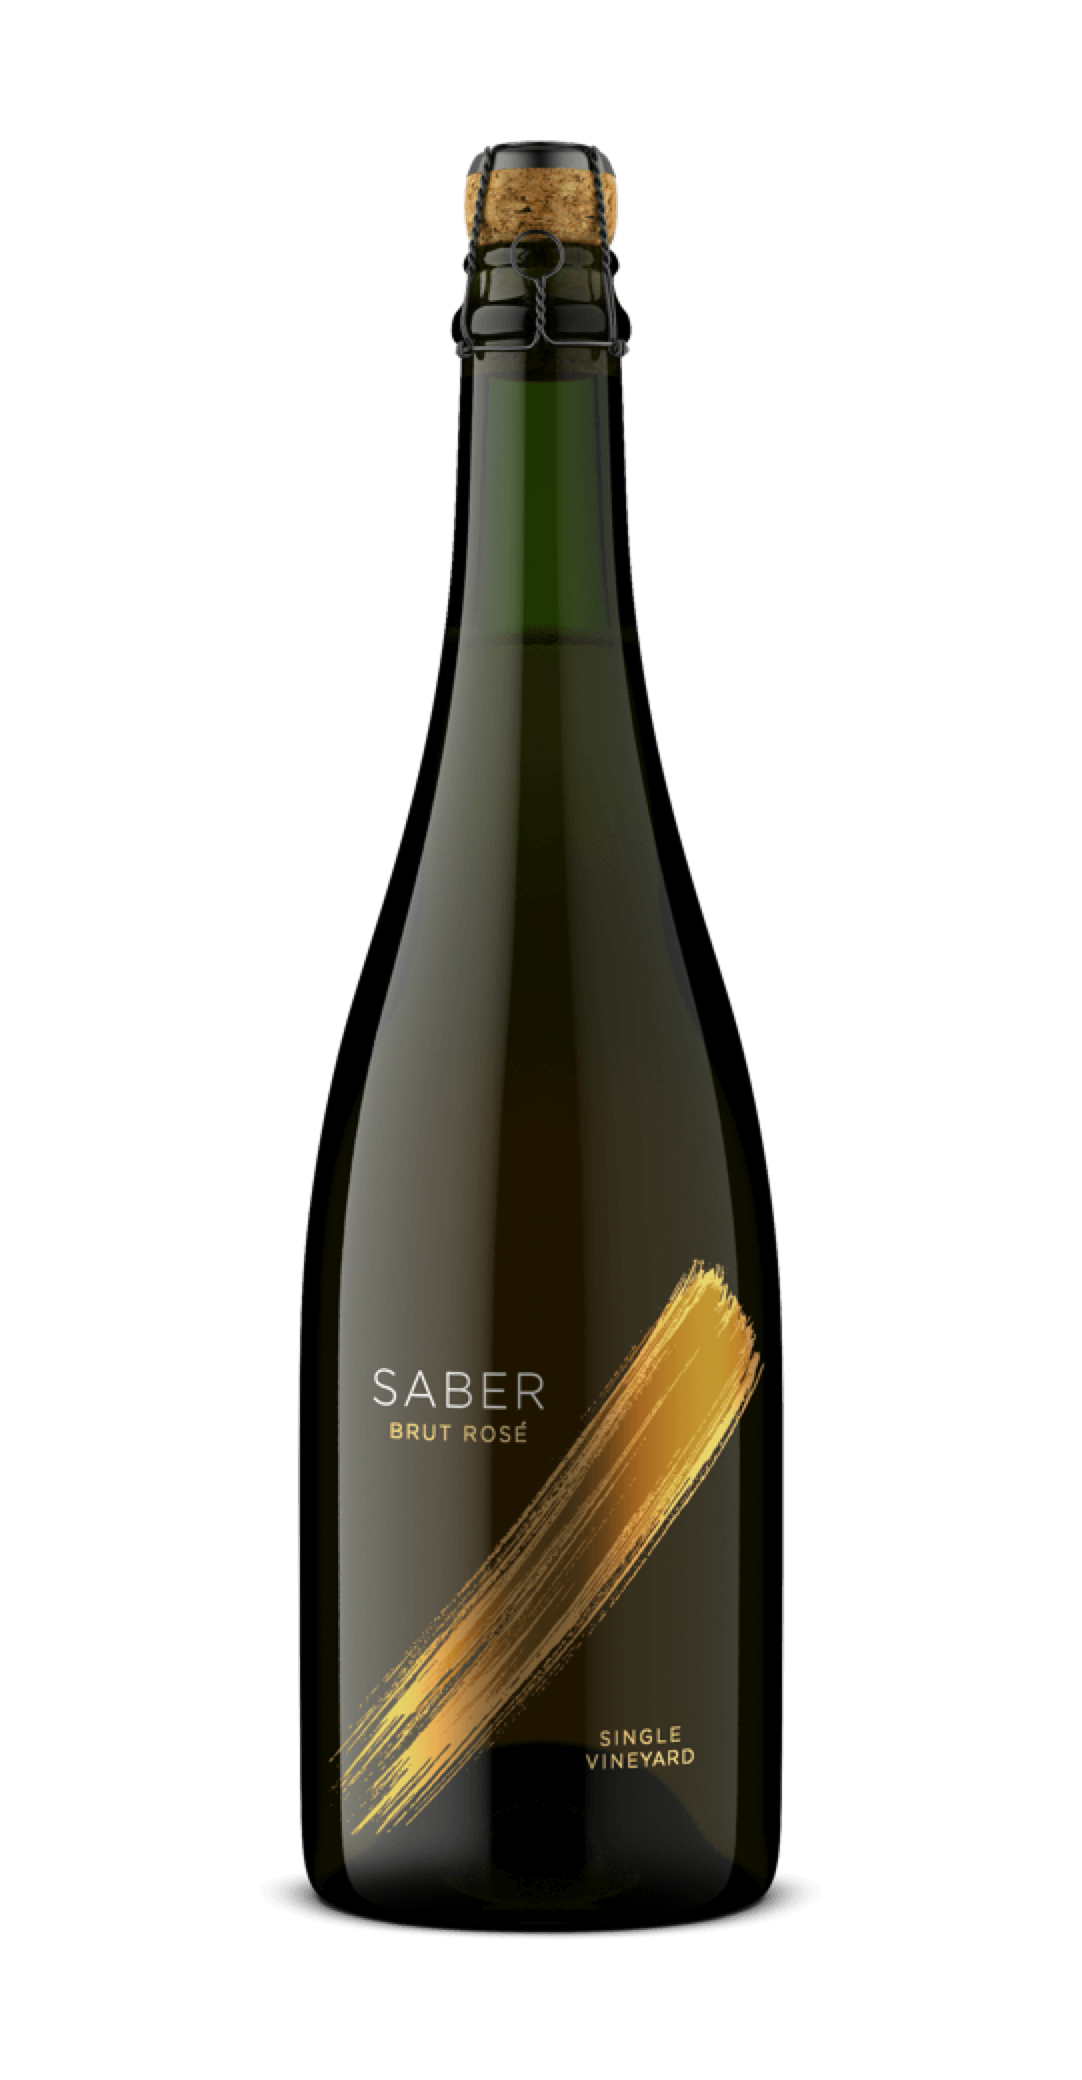 Saber Wine bottle